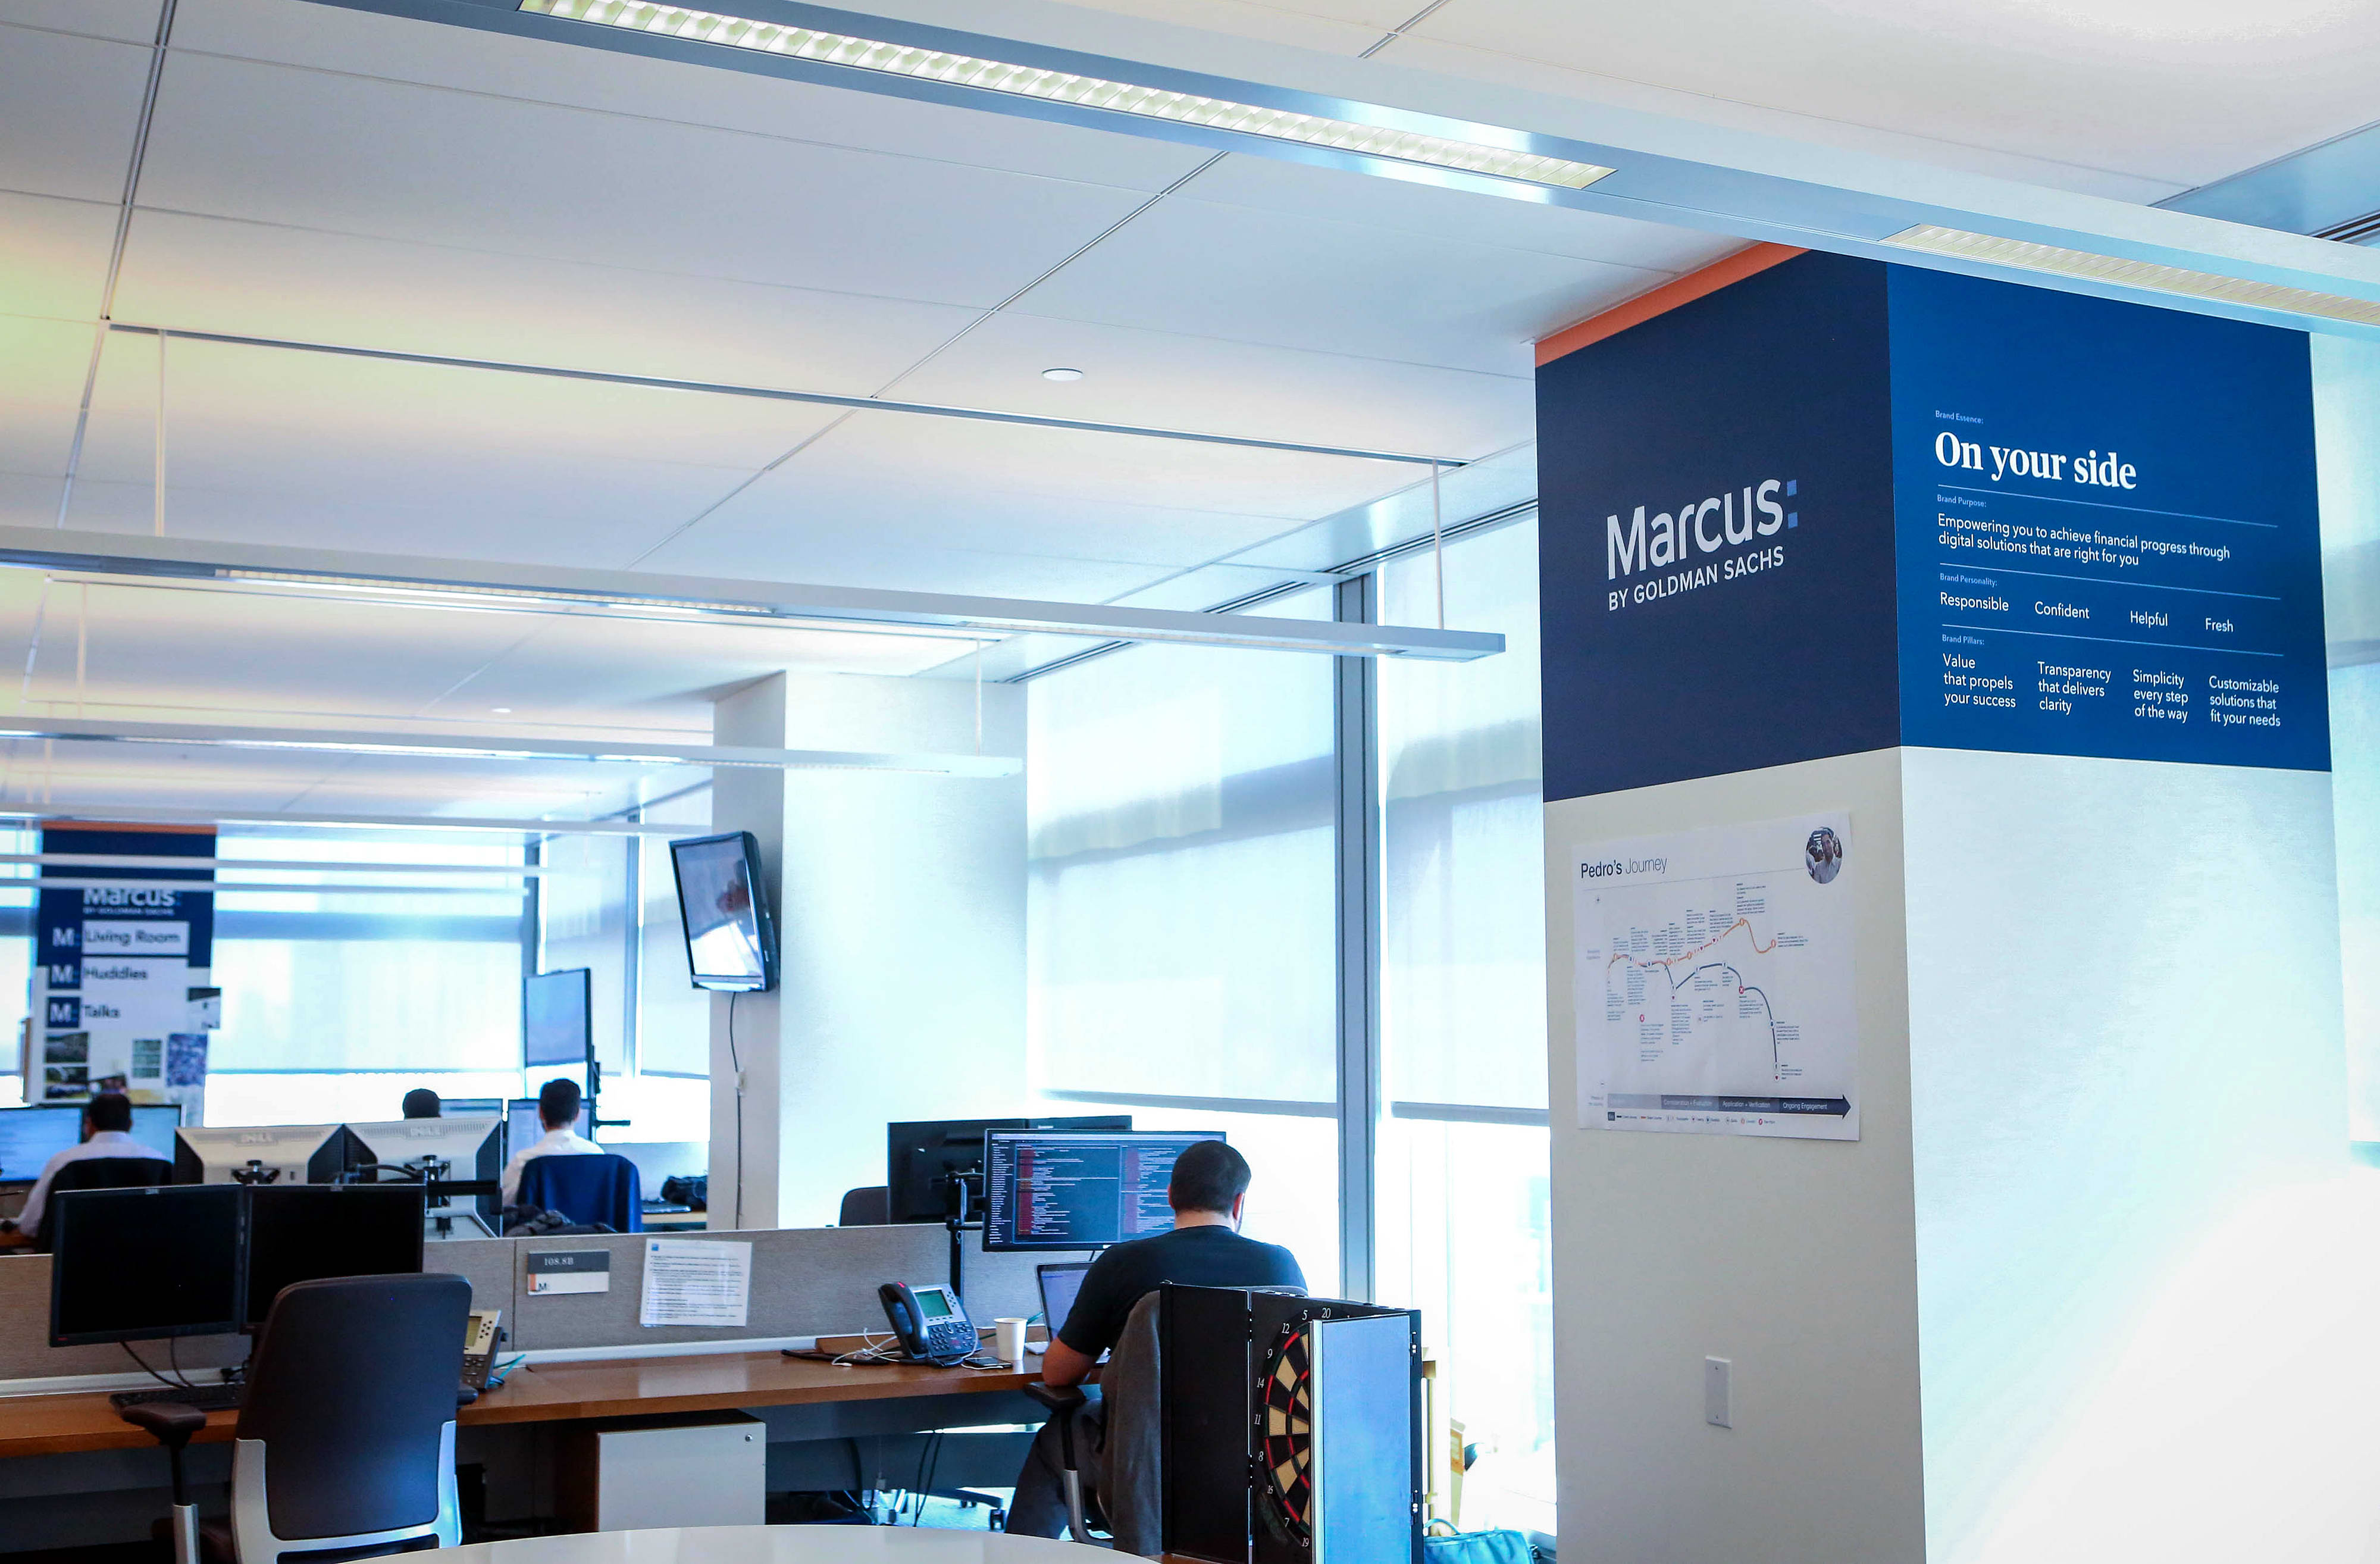 Goldman Sachs Boosts Rates On Marcus Accounts As Banks Fight For